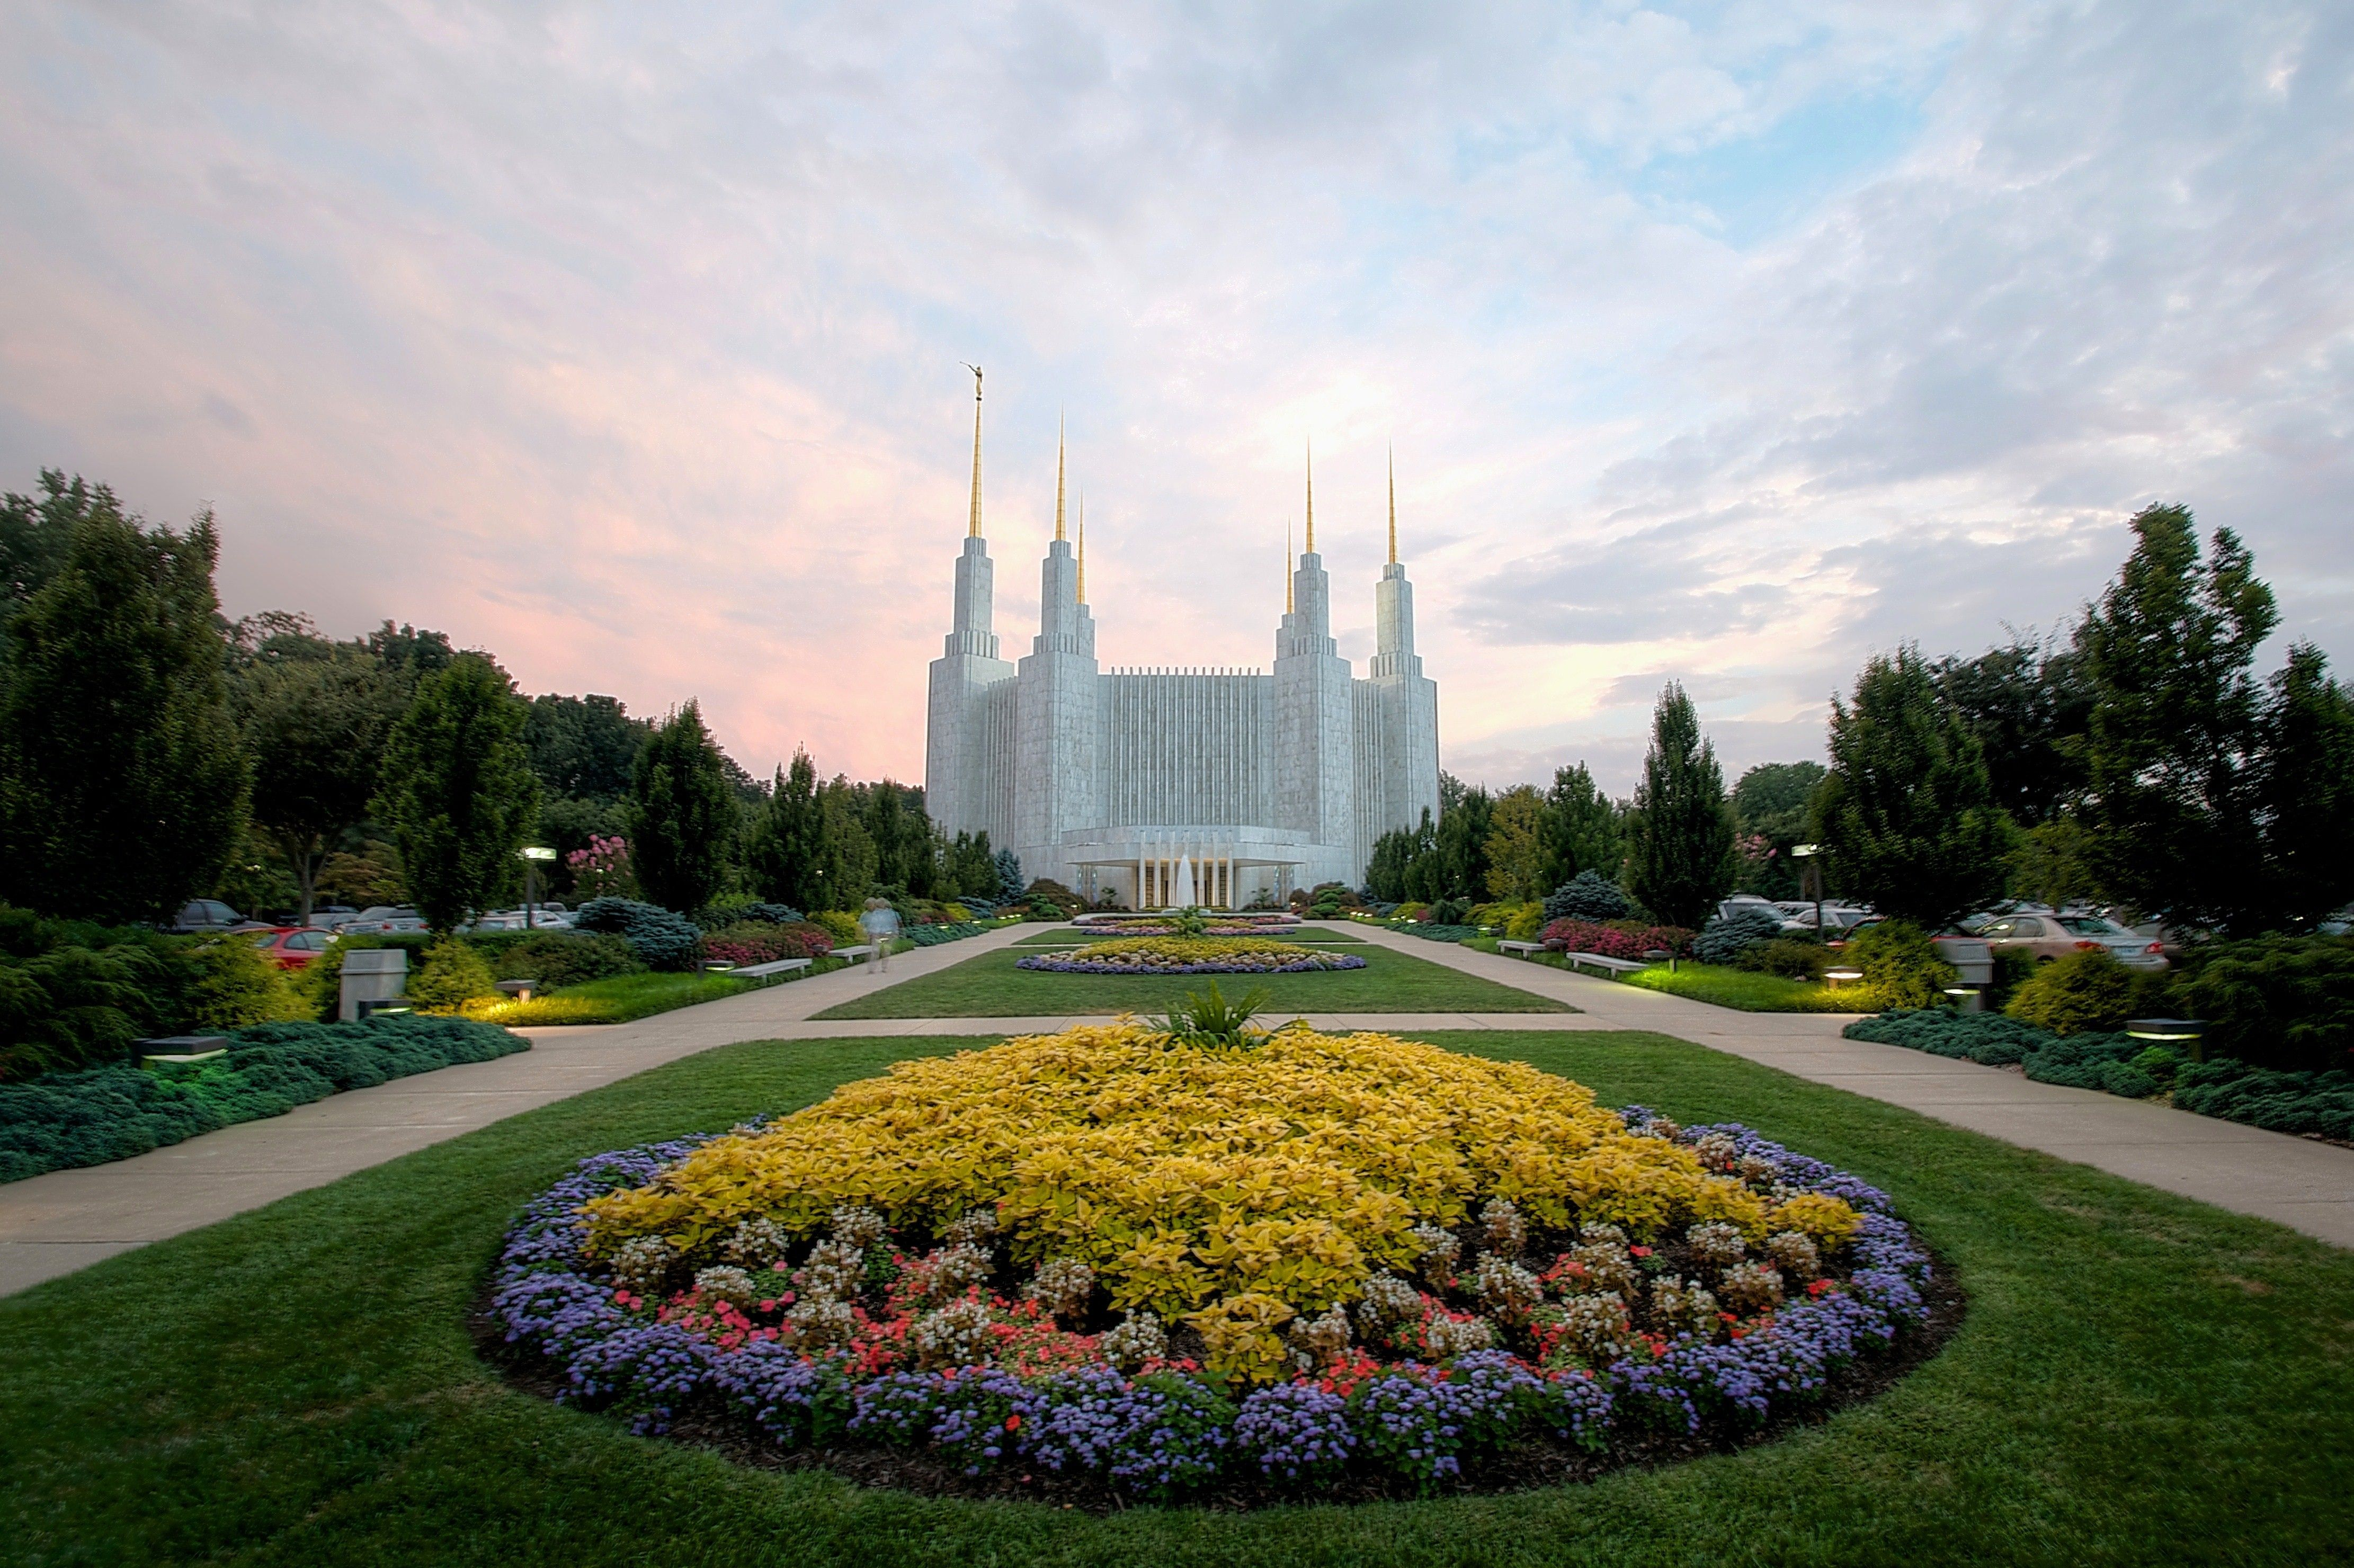 The Washington D.C. Temple entrance, with scenery.